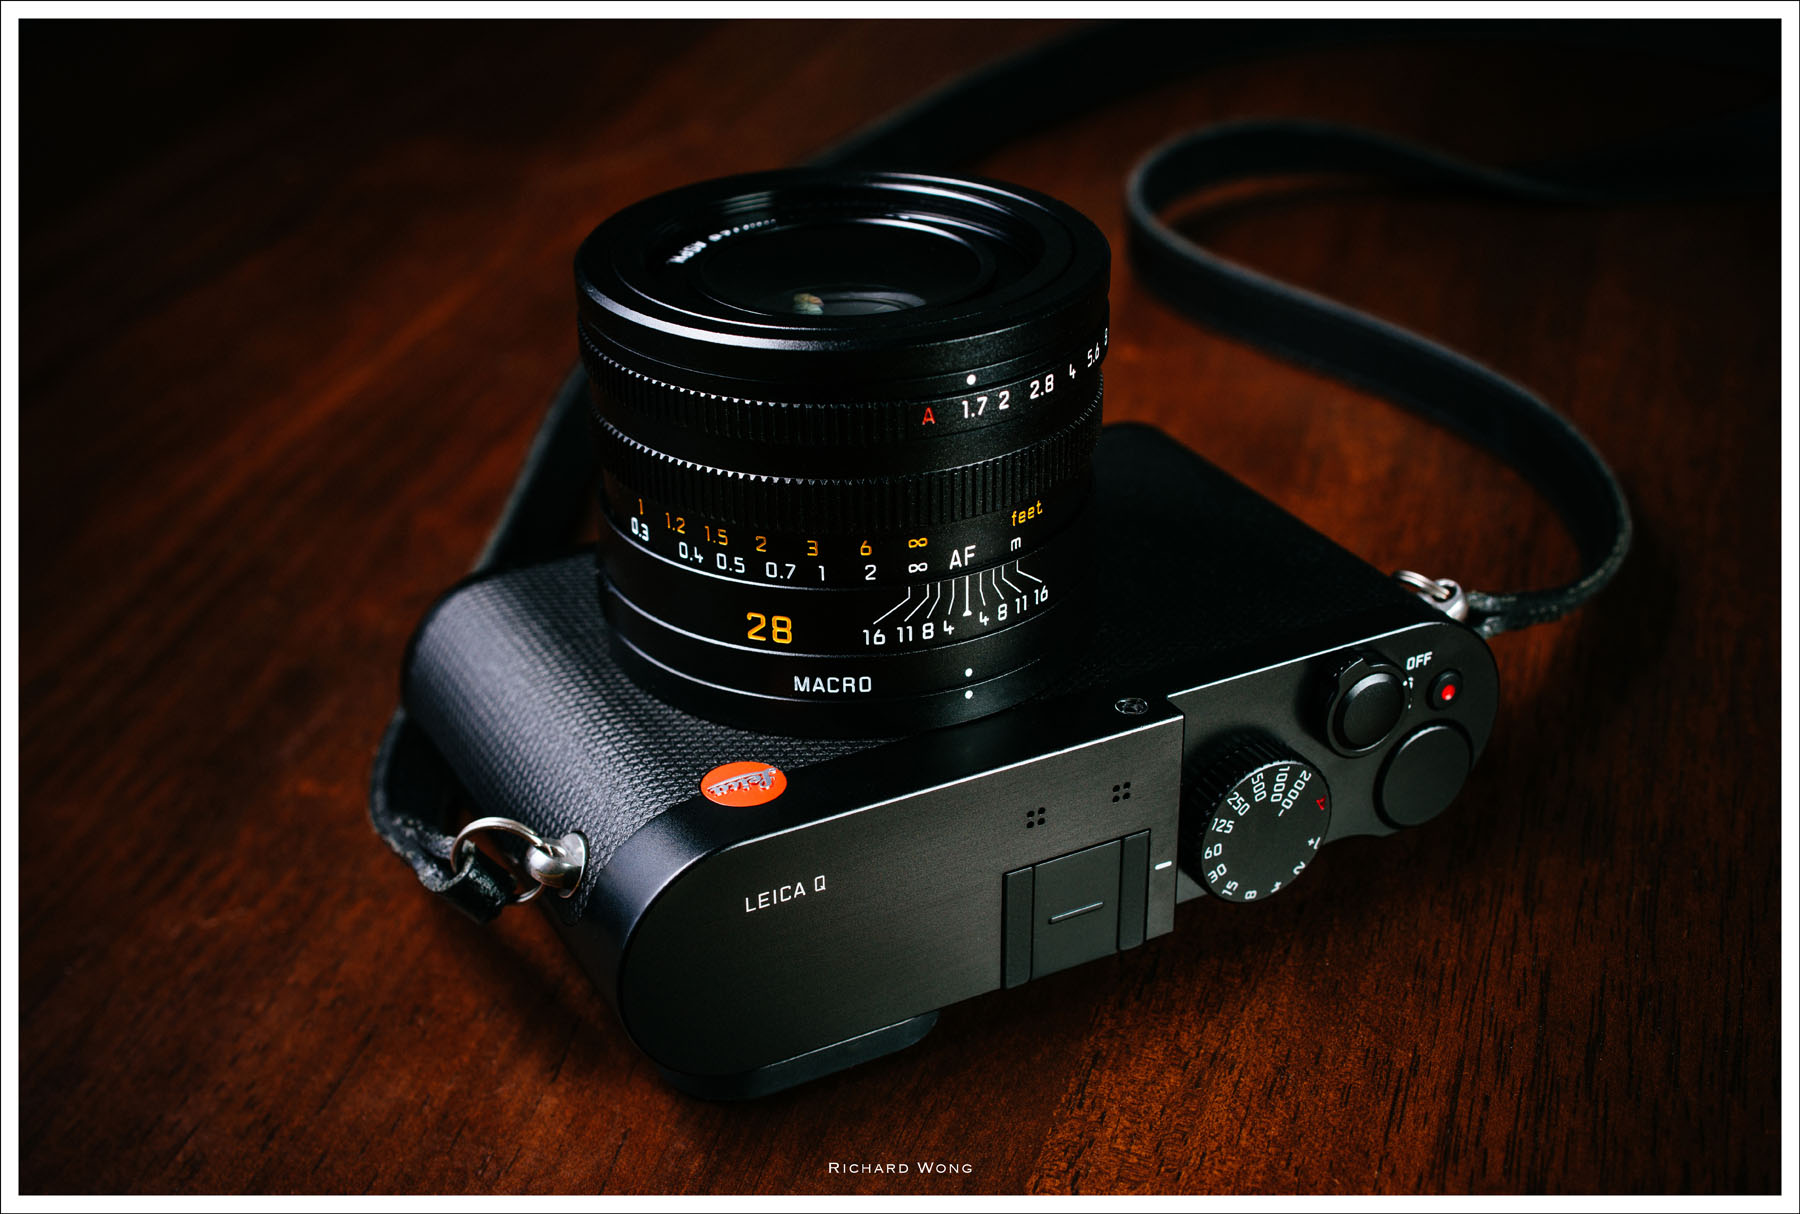 leica-q-review-05